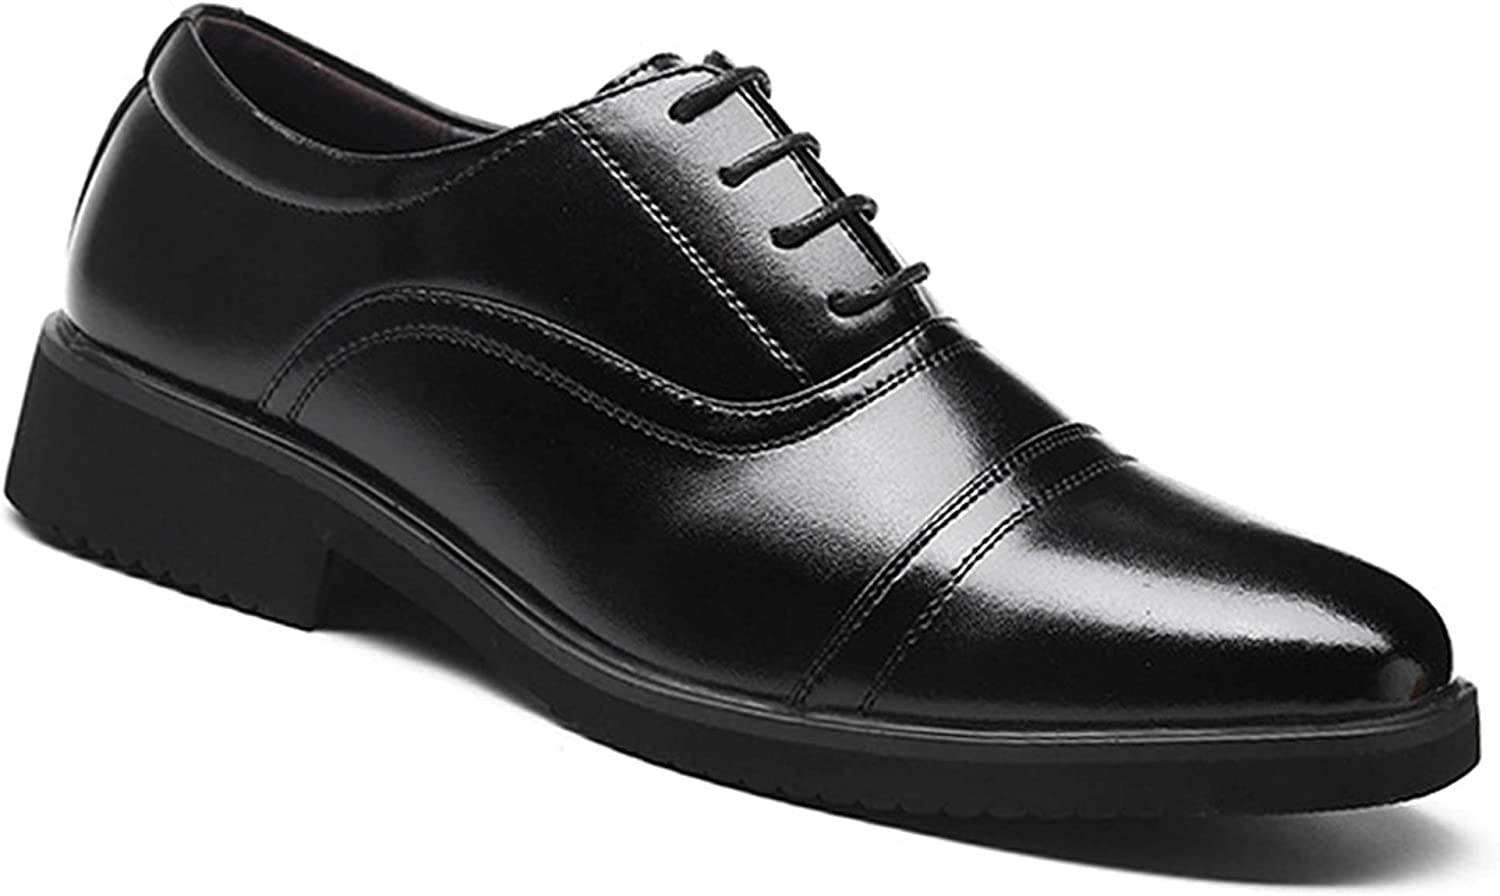 Men's Oxford Dress Shoes Genuine Leather Shoes Lace-up Commuting Anti-Slip Breathable Business Shoes